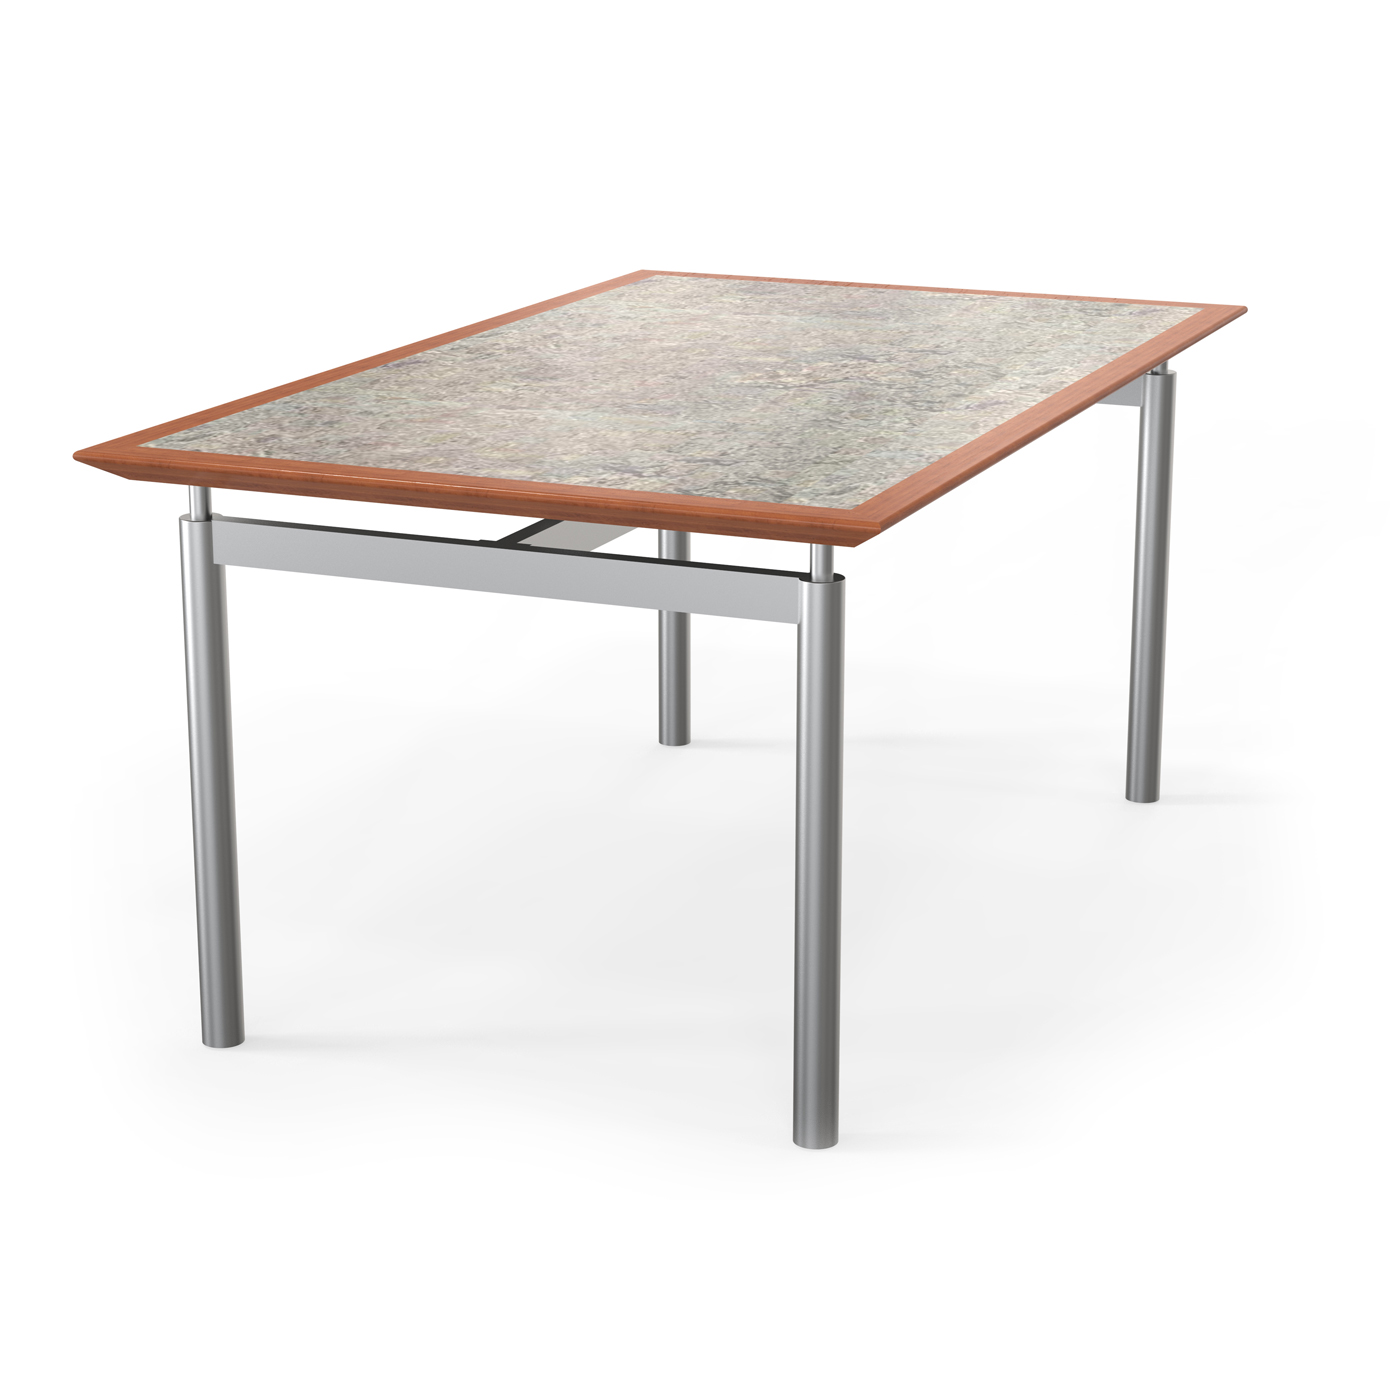 library table made of metal and wood